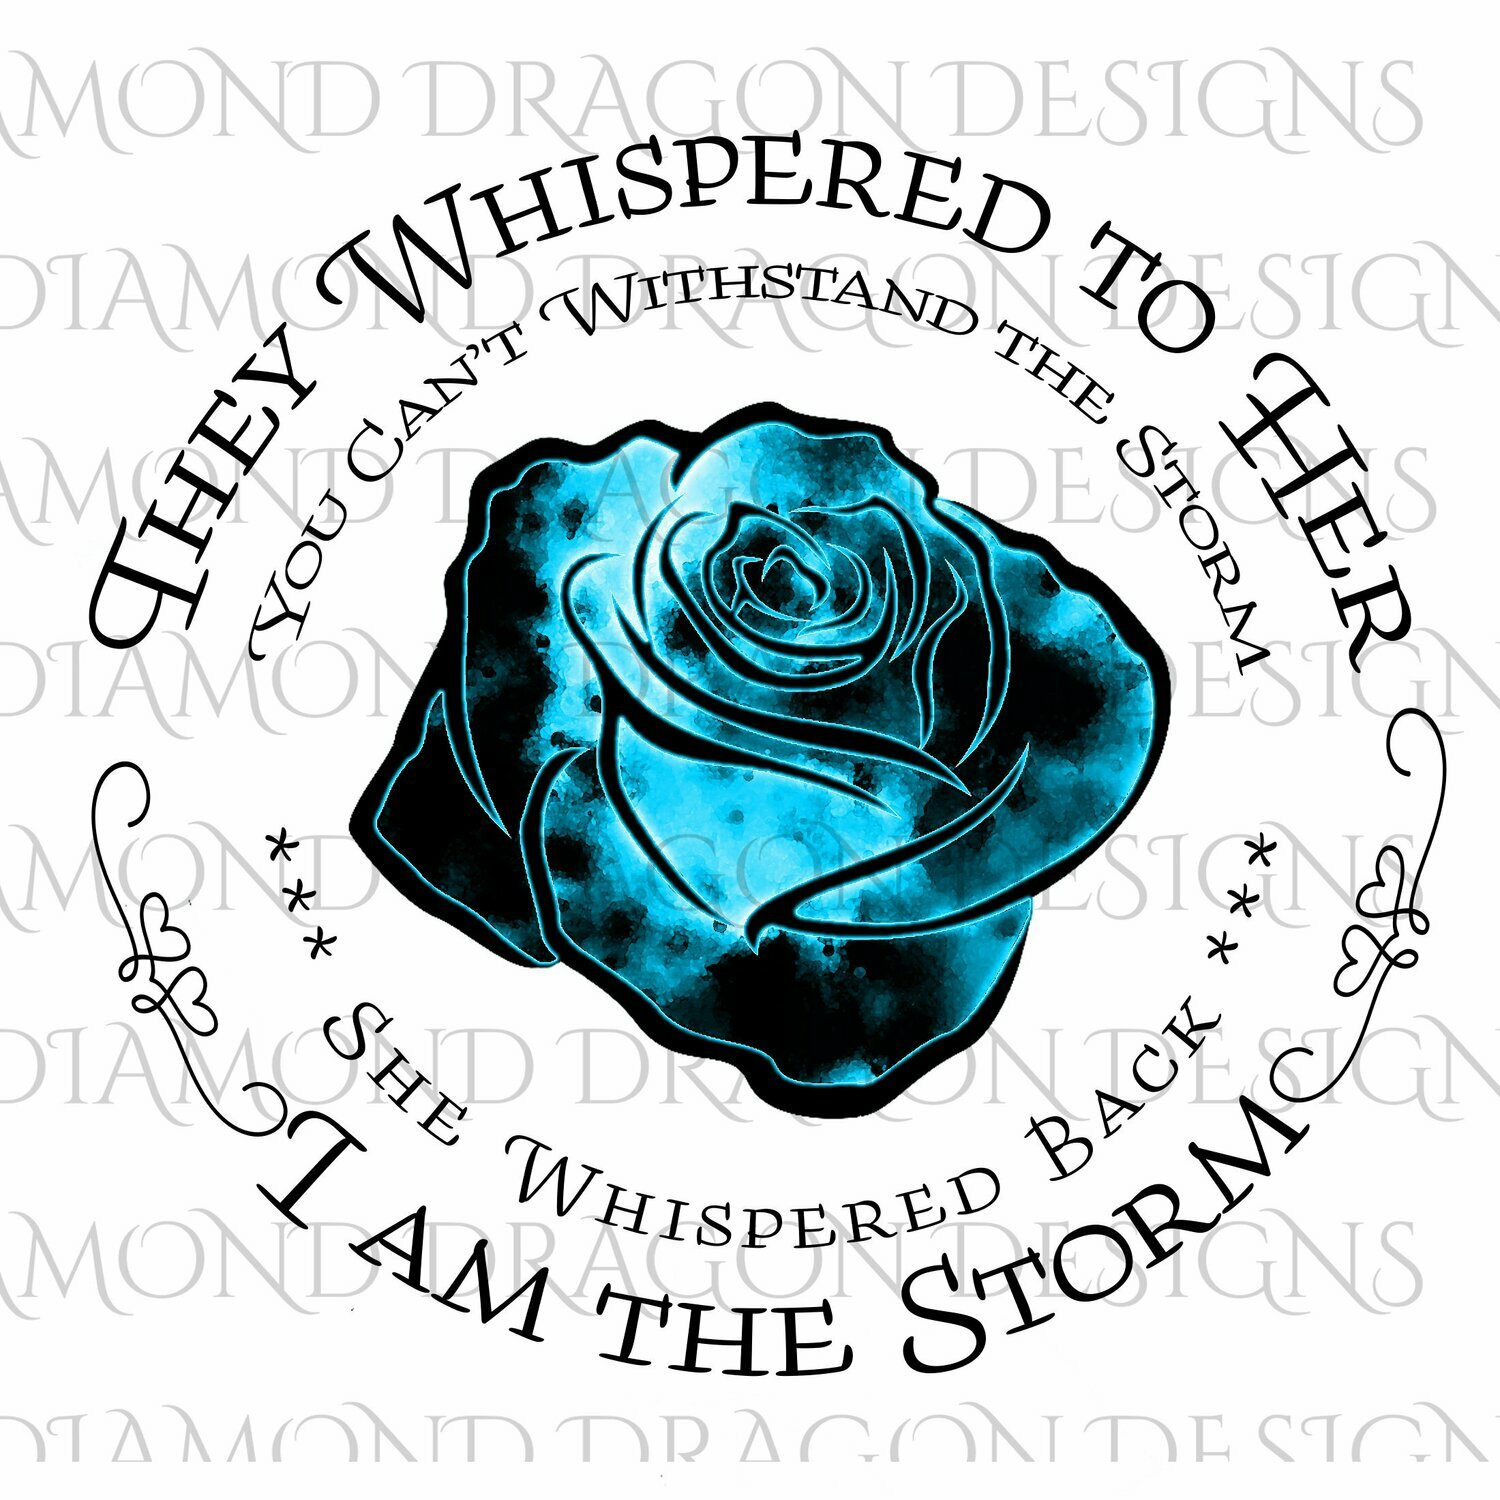 Flowers - Whispered to Her, Cannot Withstand the Storm, I am the Storm, Quote, Blue Watercolor Galaxy Rose, Waterslide